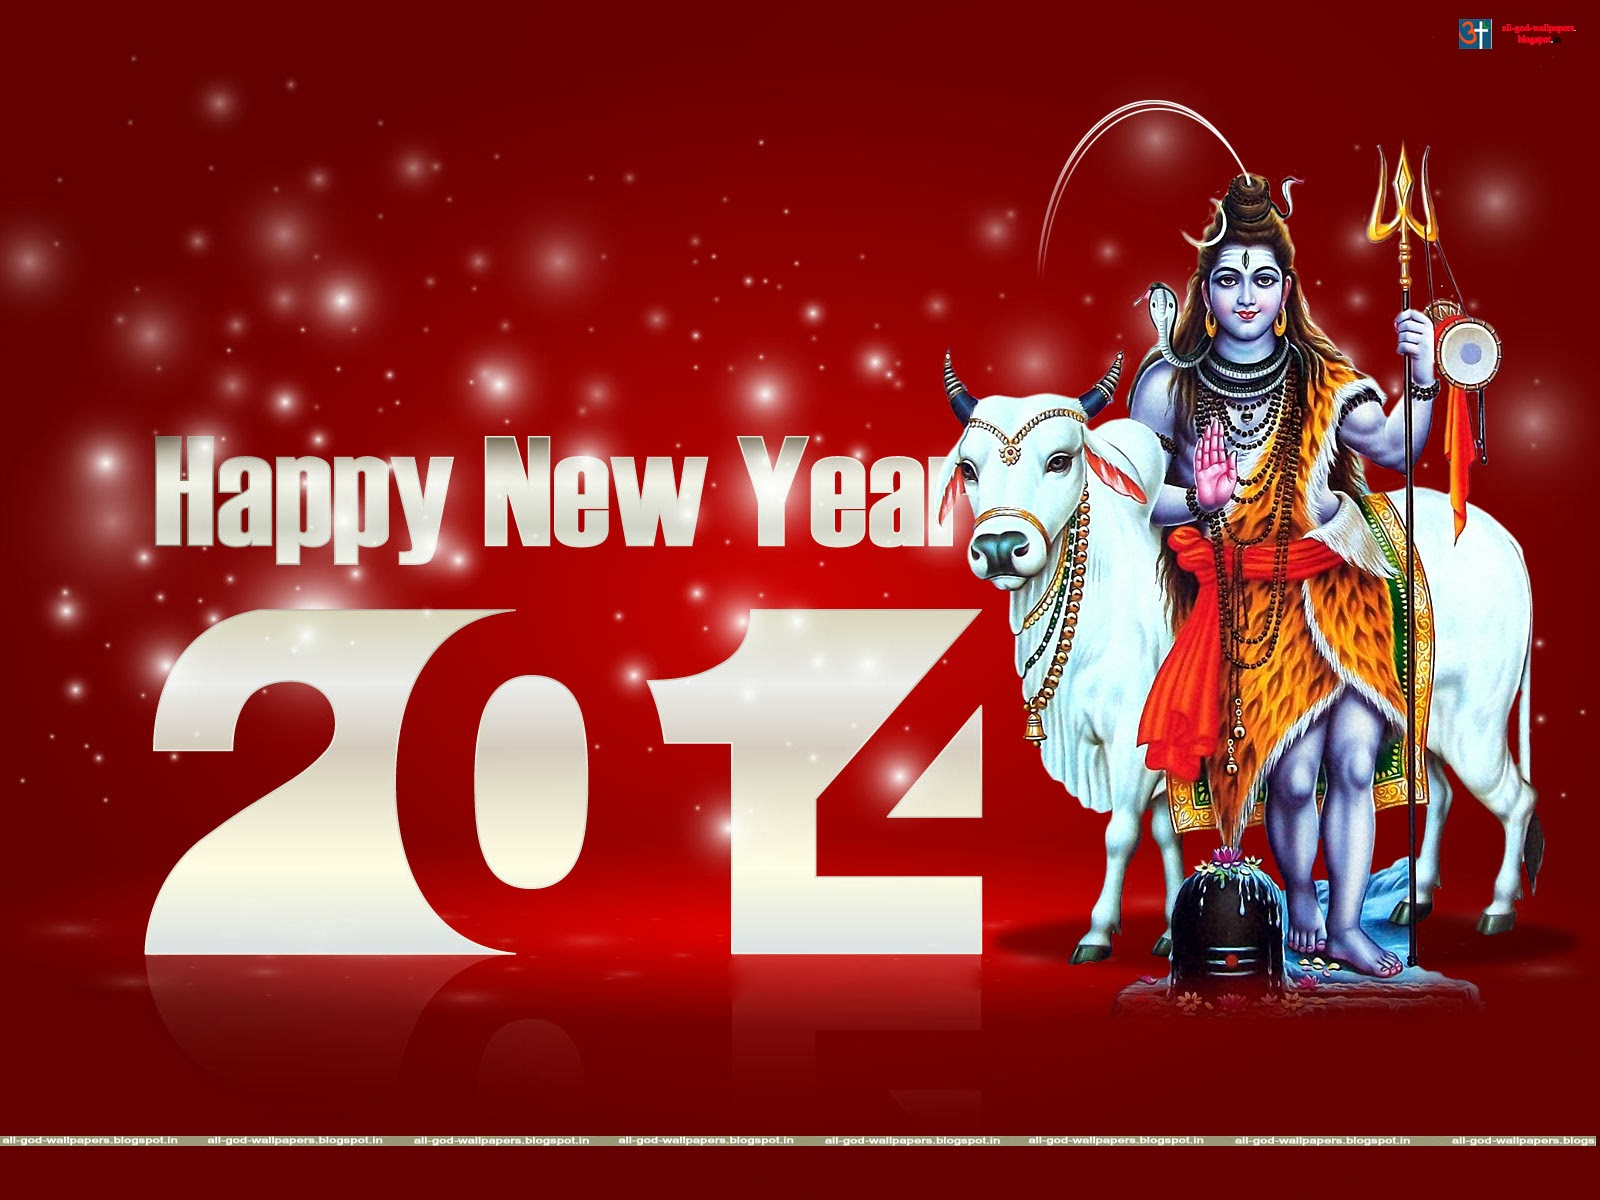 Happy New Year 2015 Fireworks Widescreen Background Wallpaper 1600x1200